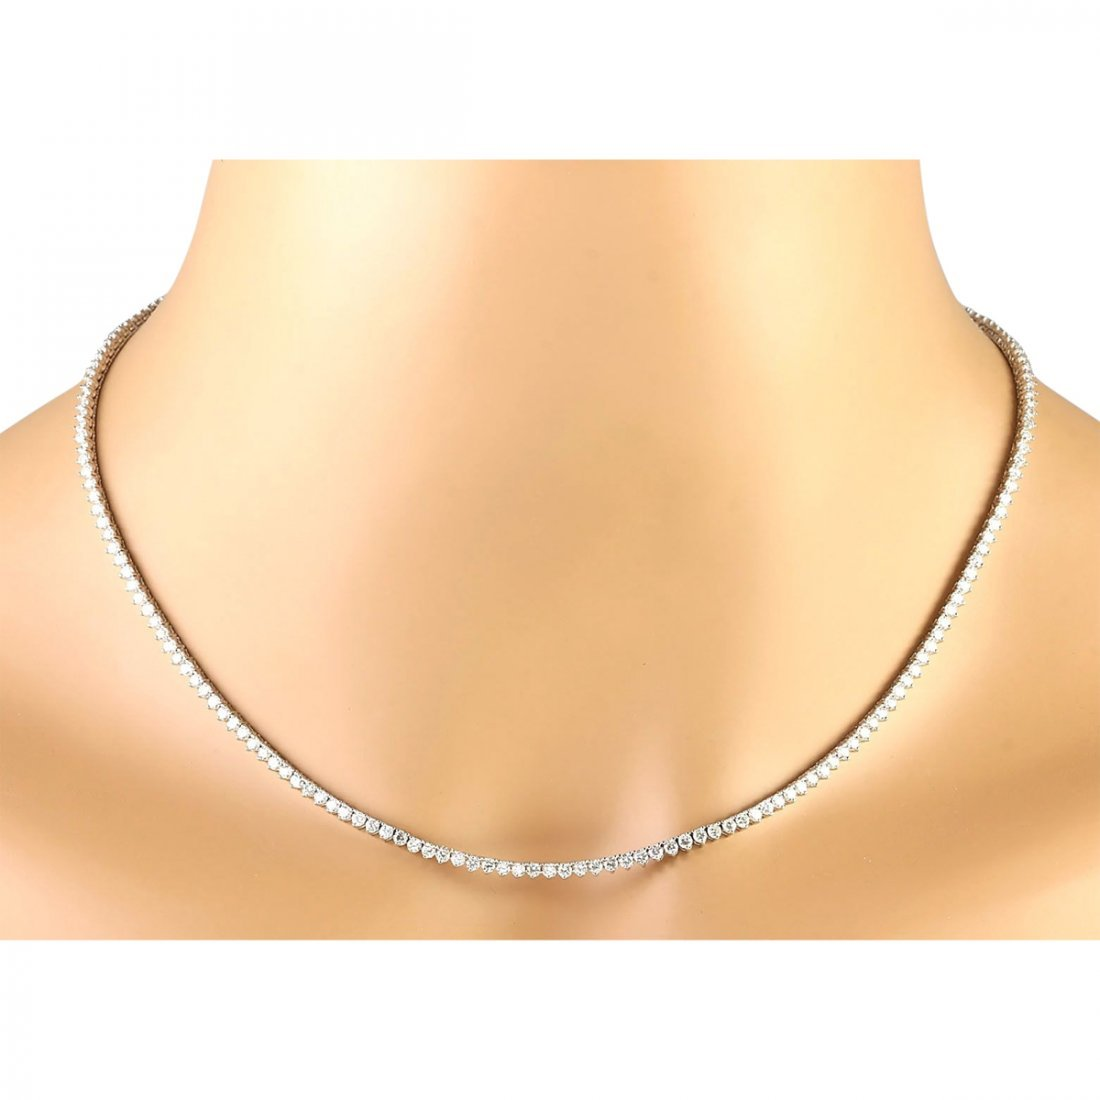 6.20 CTW Natural Diamond Necklace In 14k White Gold